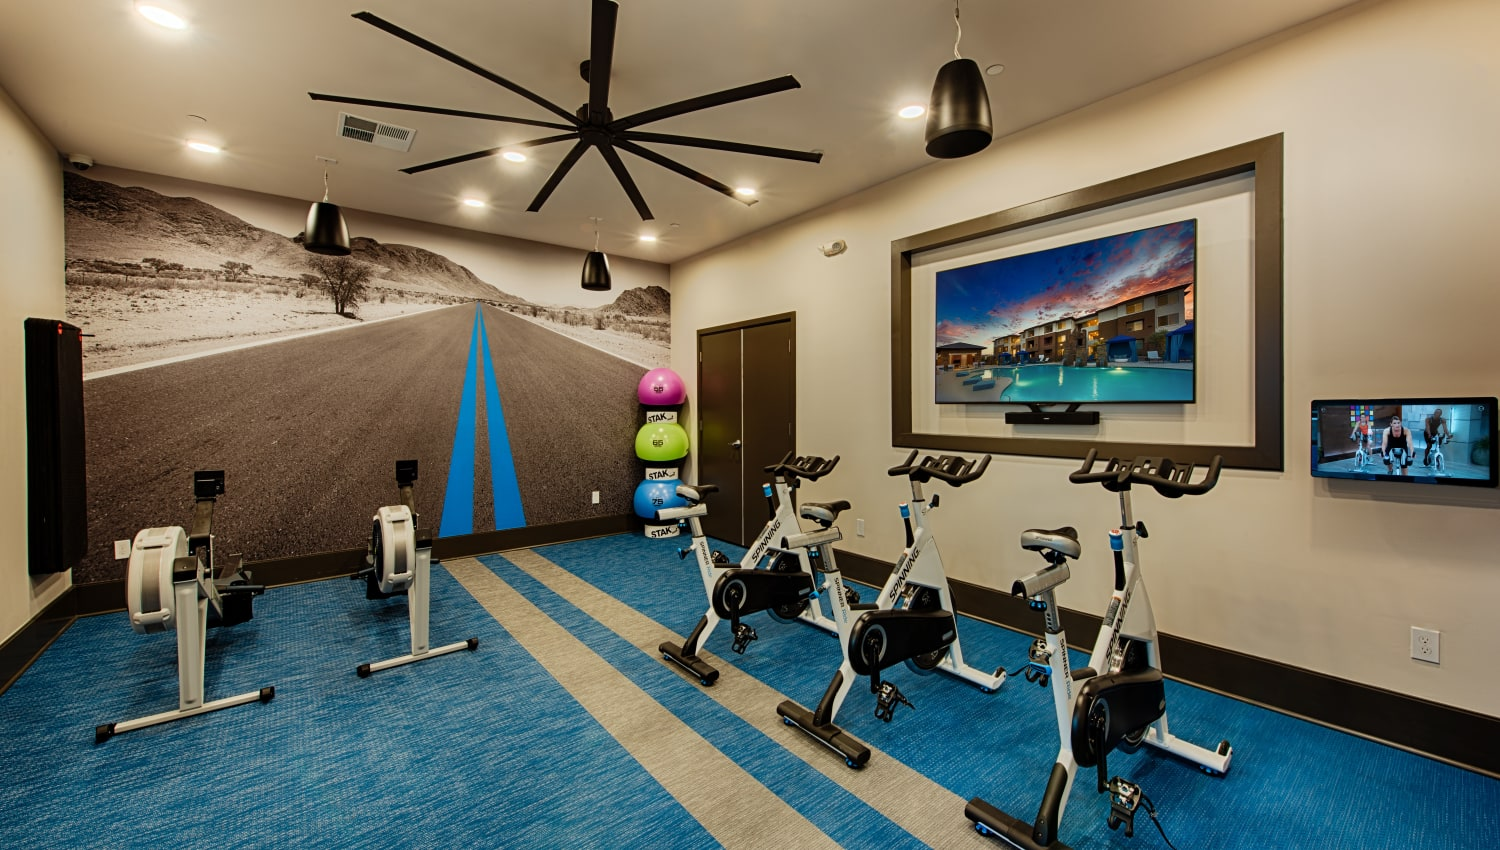 Cardio equipment in the fitness center at Ocio Plaza Del Rio in Peoria, Arizona